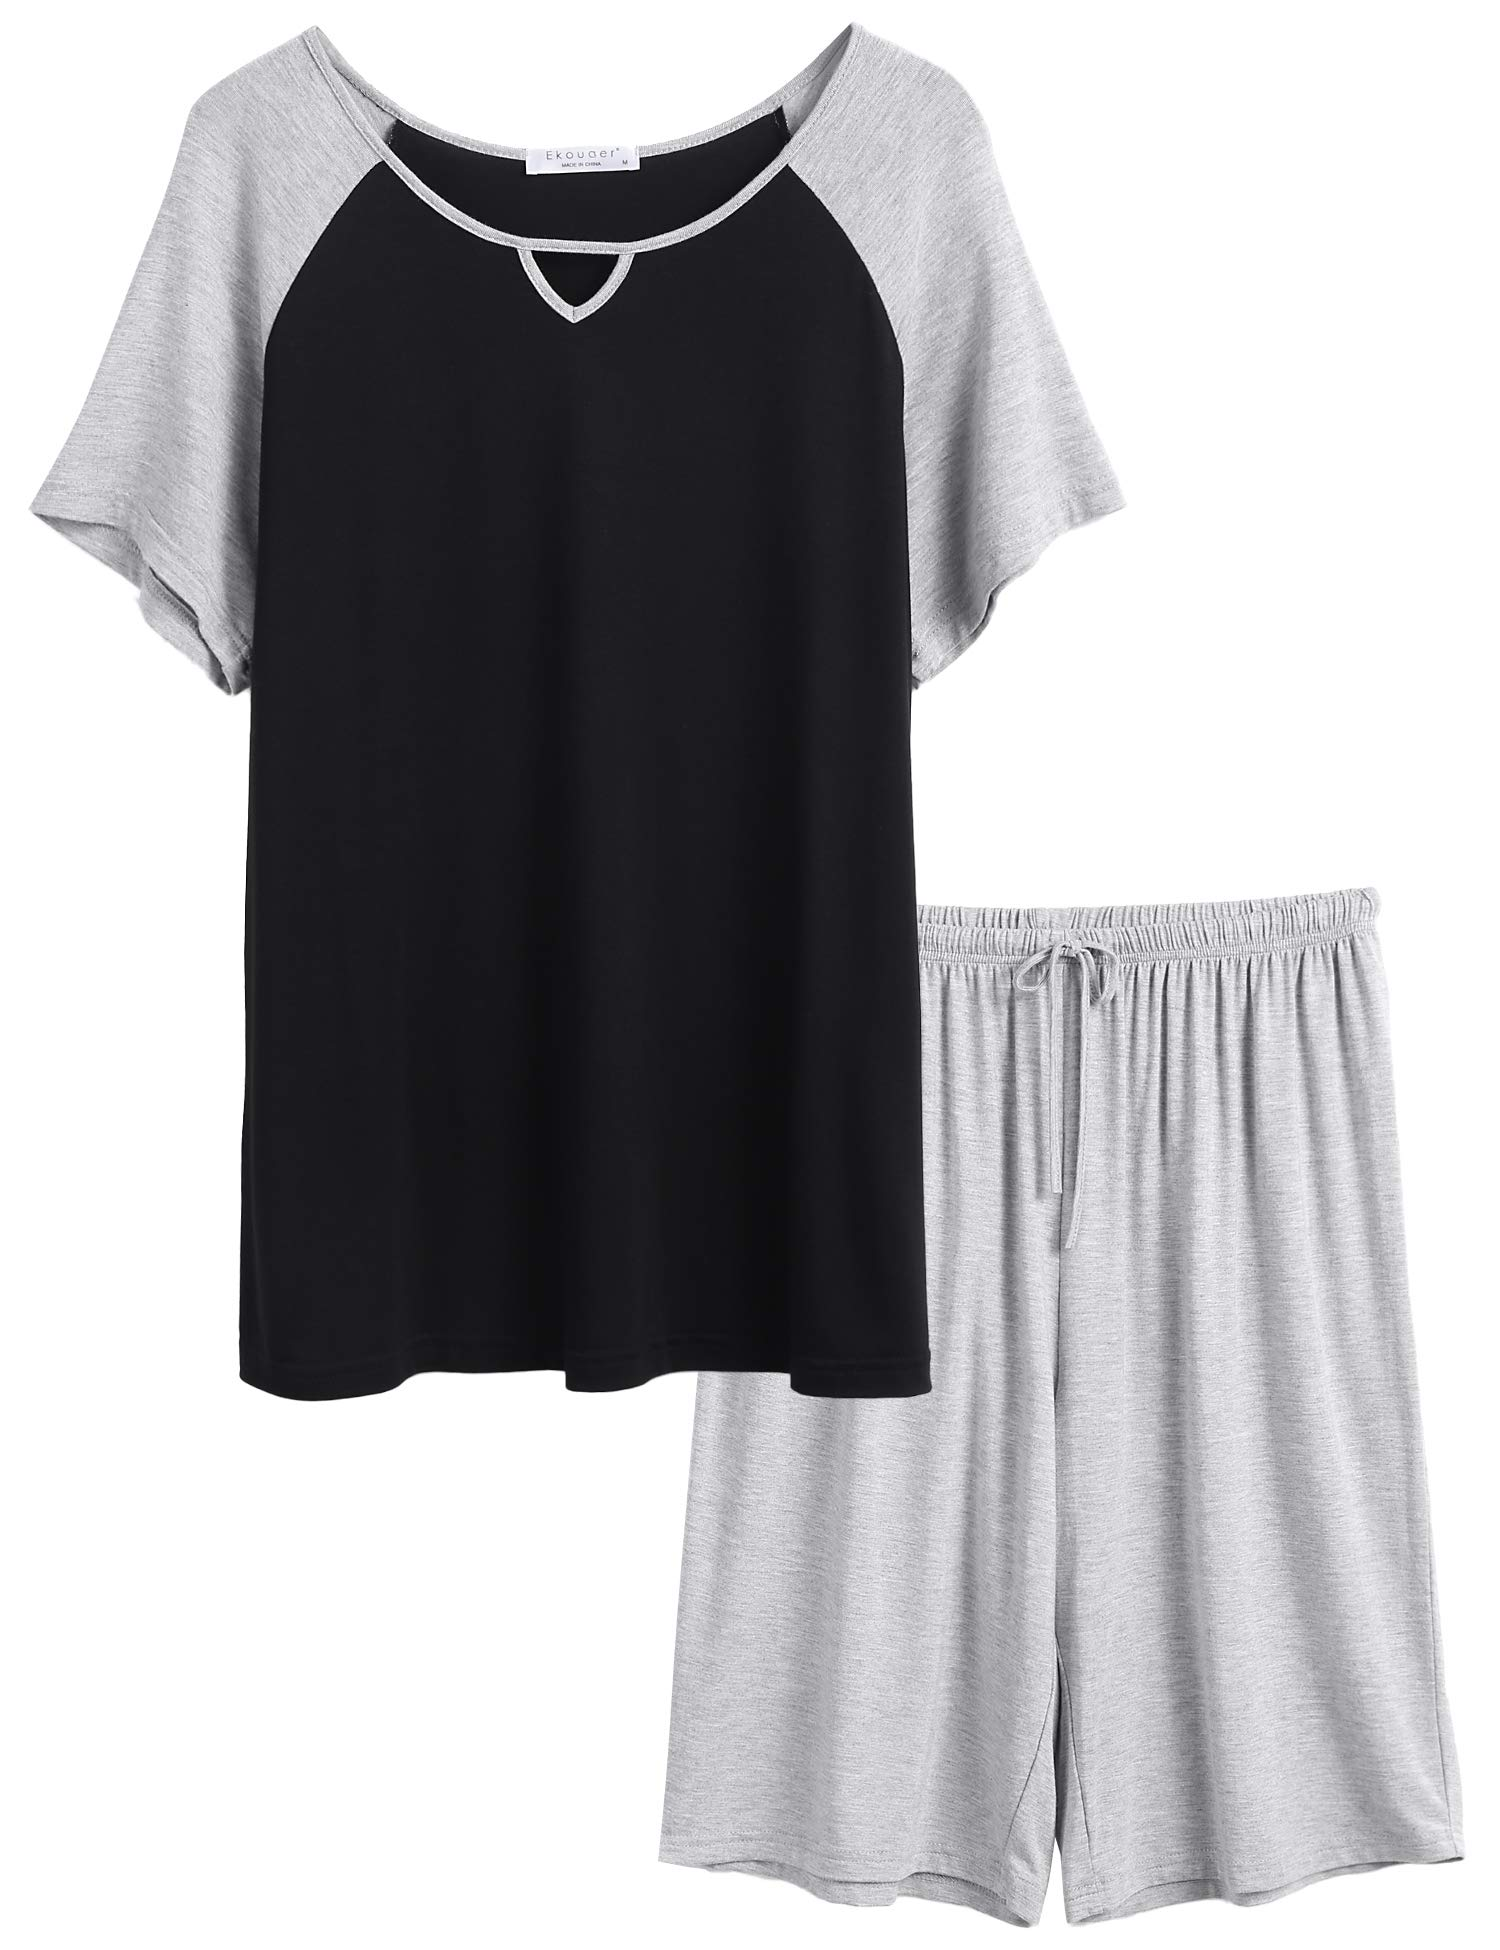 Ekouaer Short Pajama Set for Women 2-Piece Sleepwear Set Raglan Short Sleeve Tops with Shorts